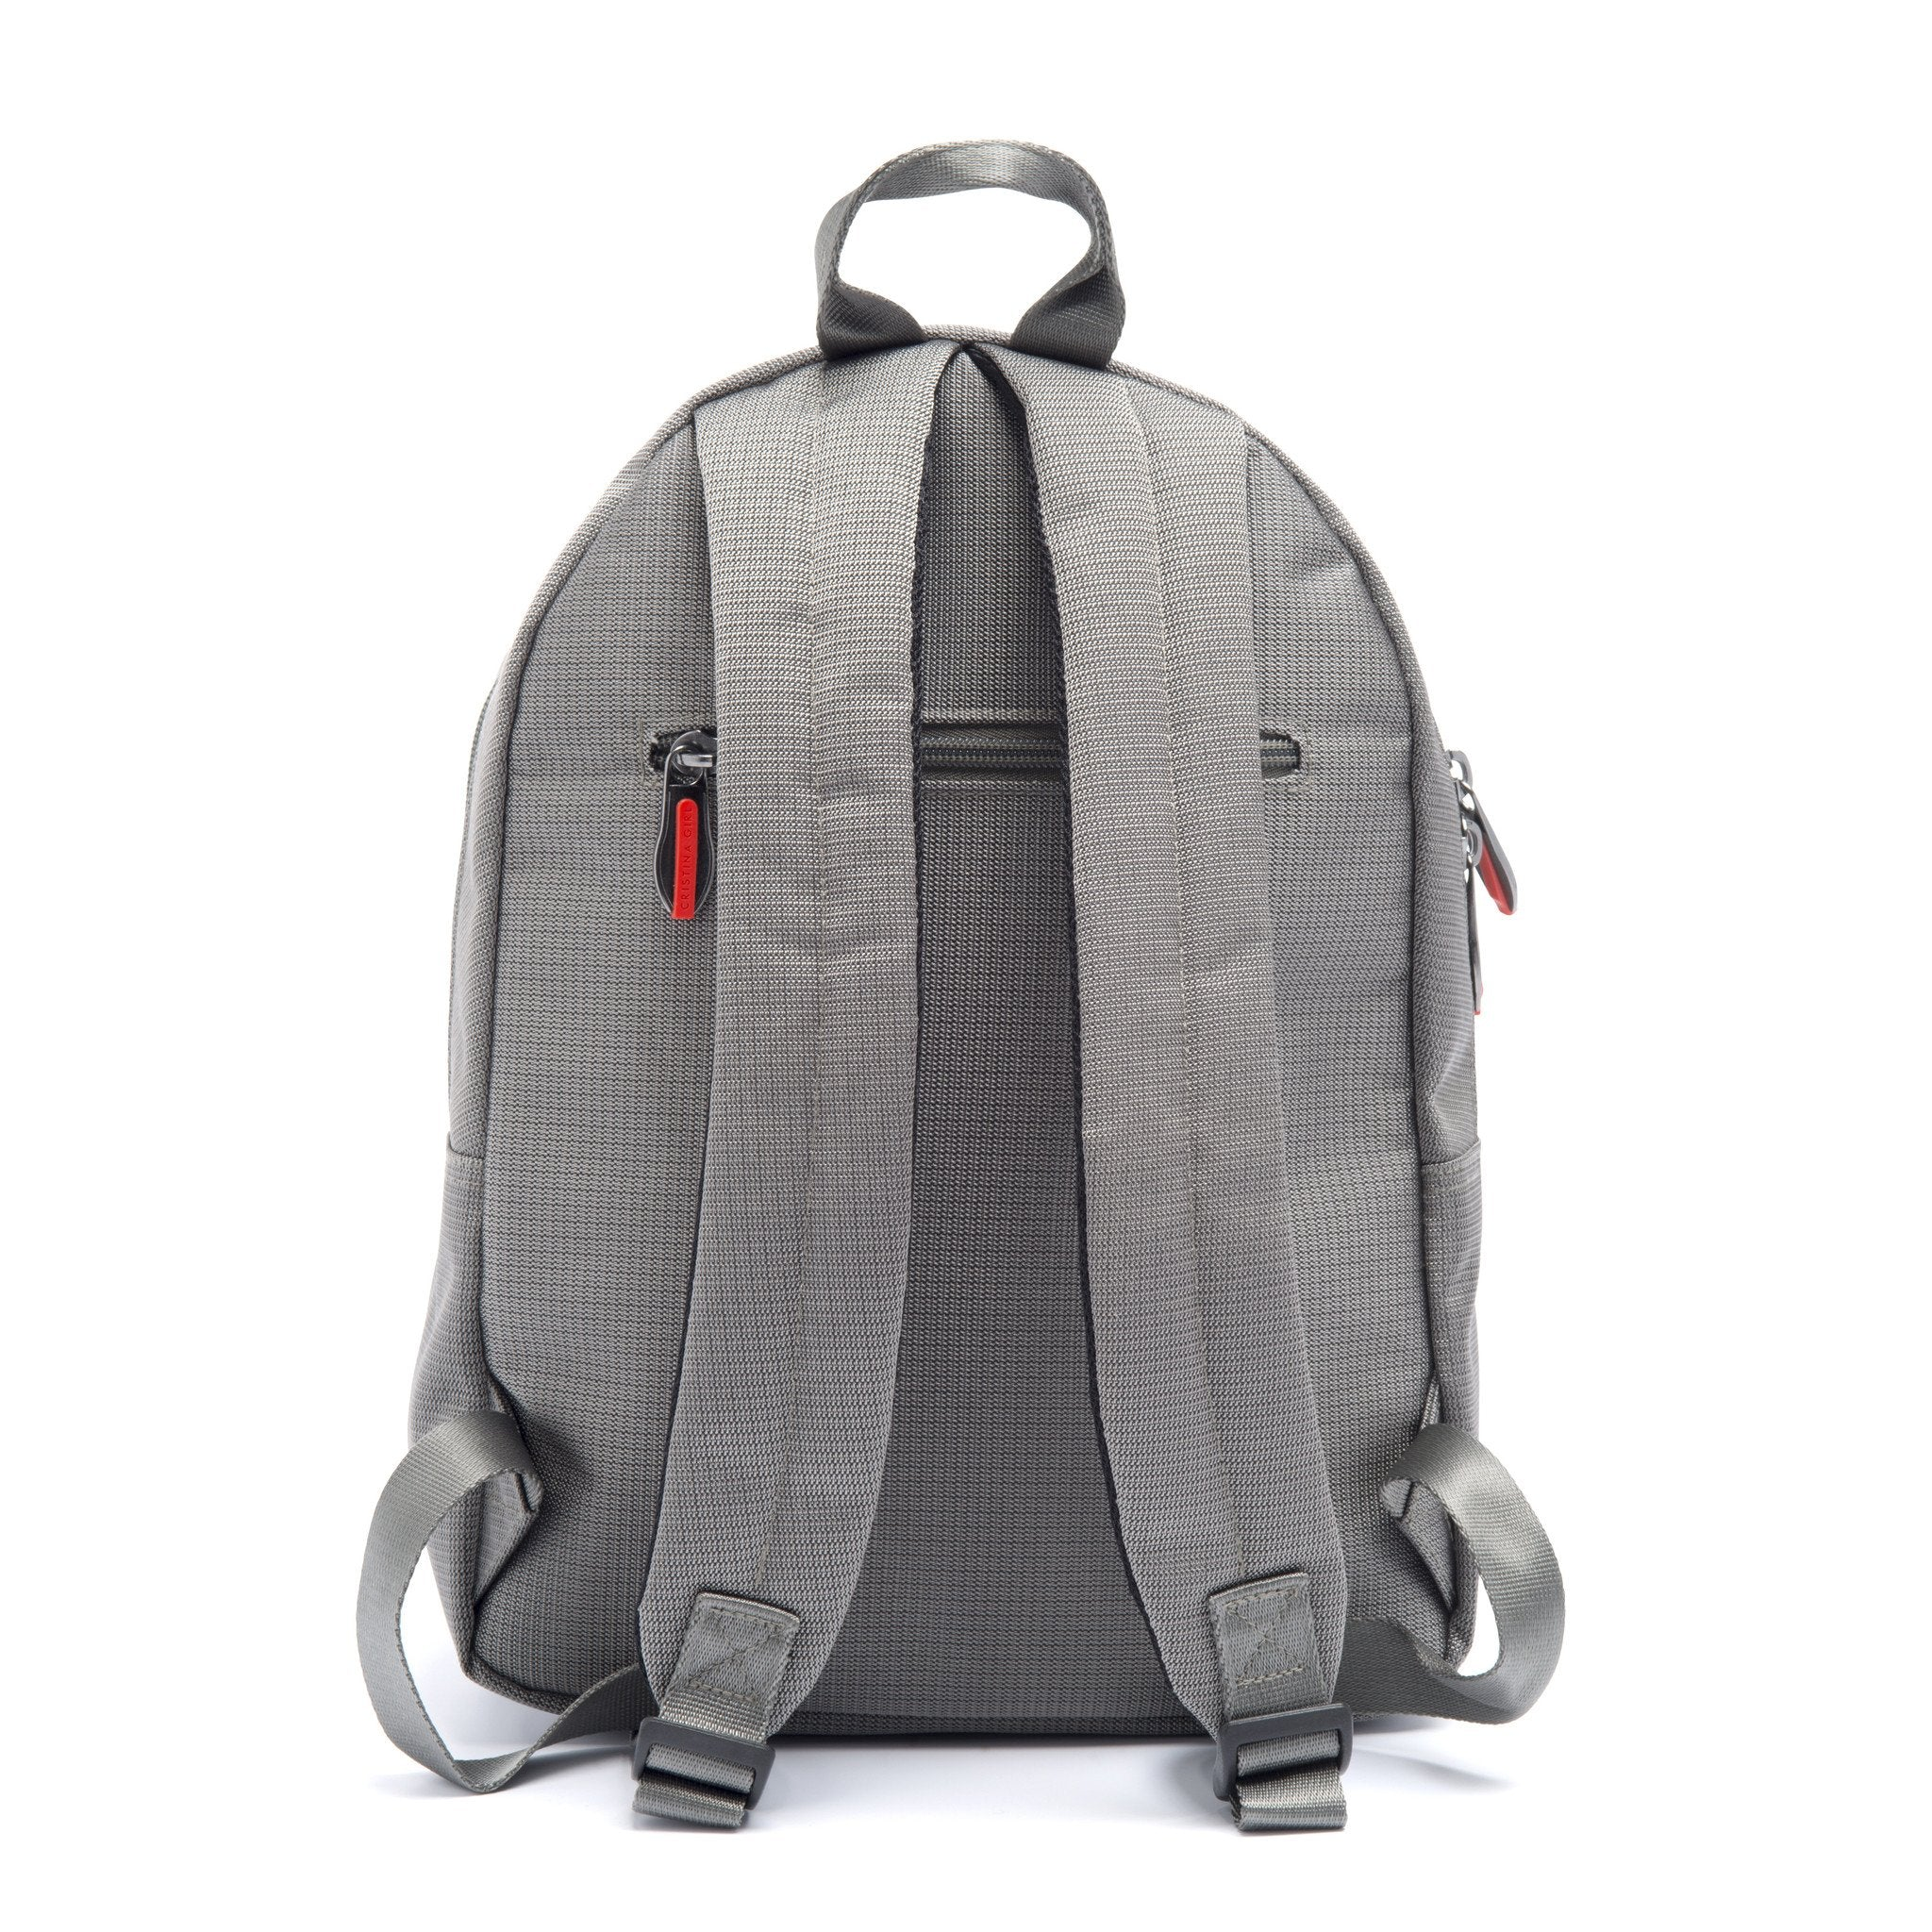 Cristina Girl Mini Backpack Nylon Koko Collection - Slate Grey